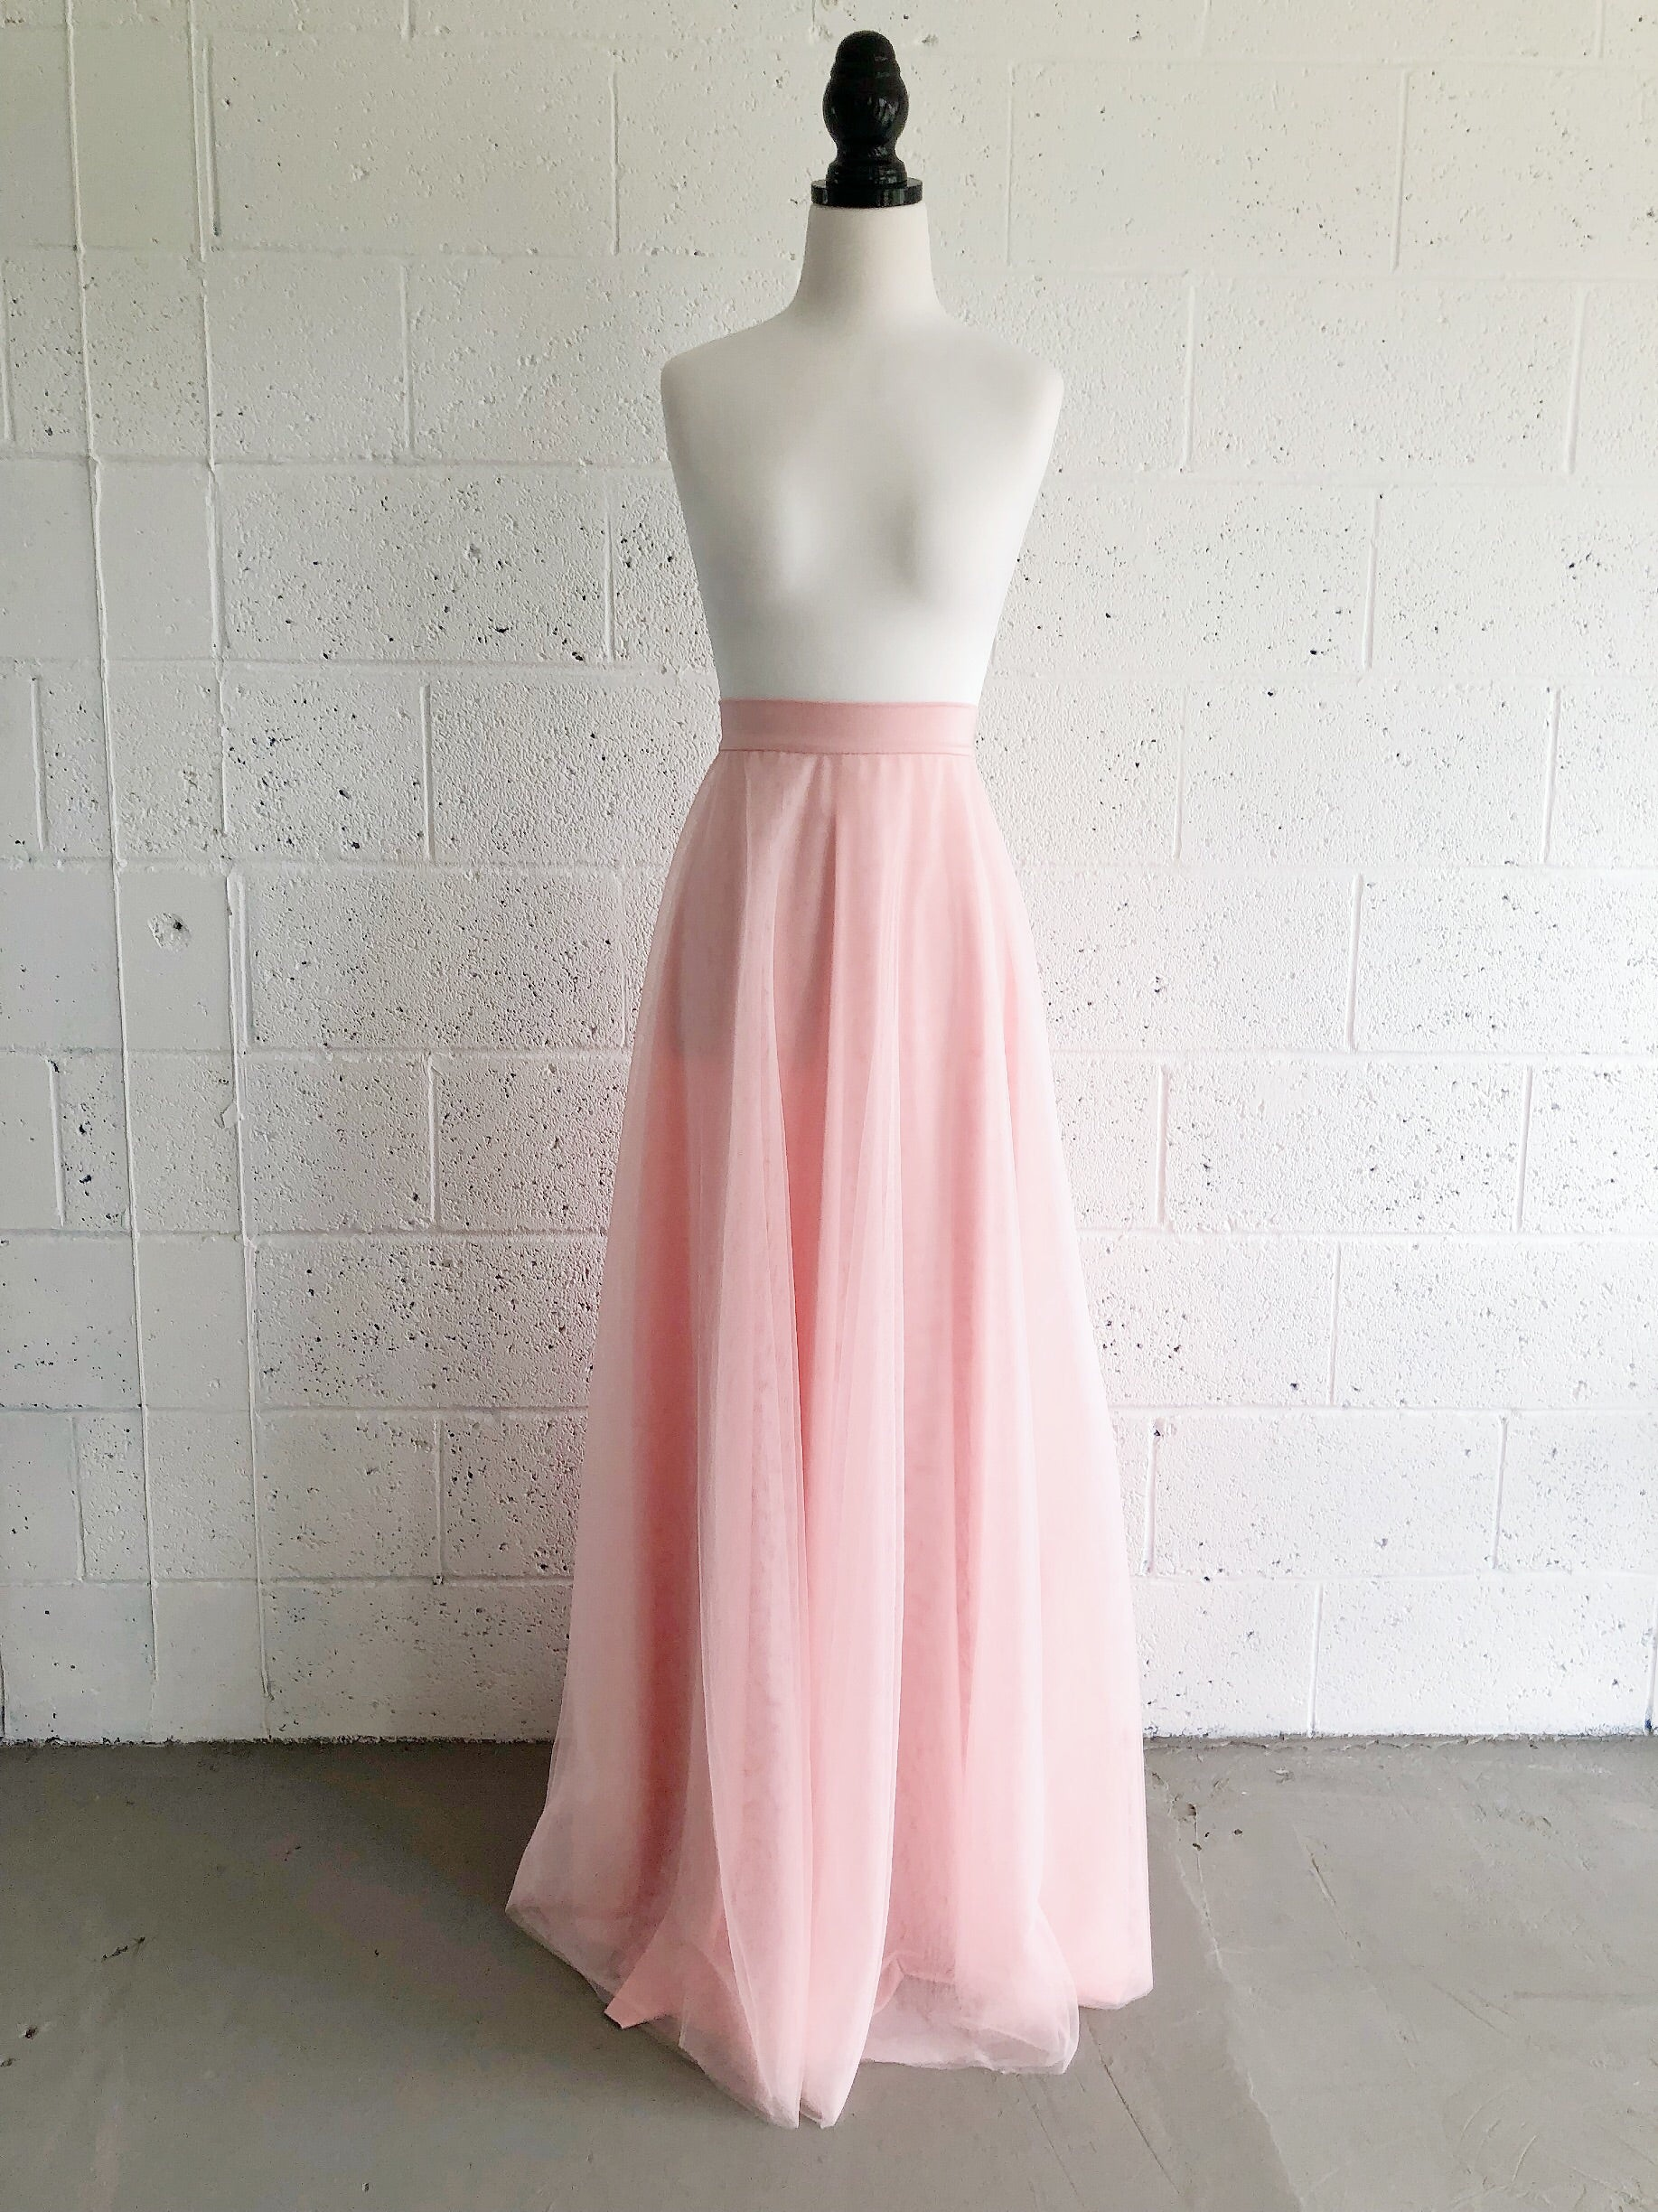 Tulle Skirt - Made by Erika Convertible Collection